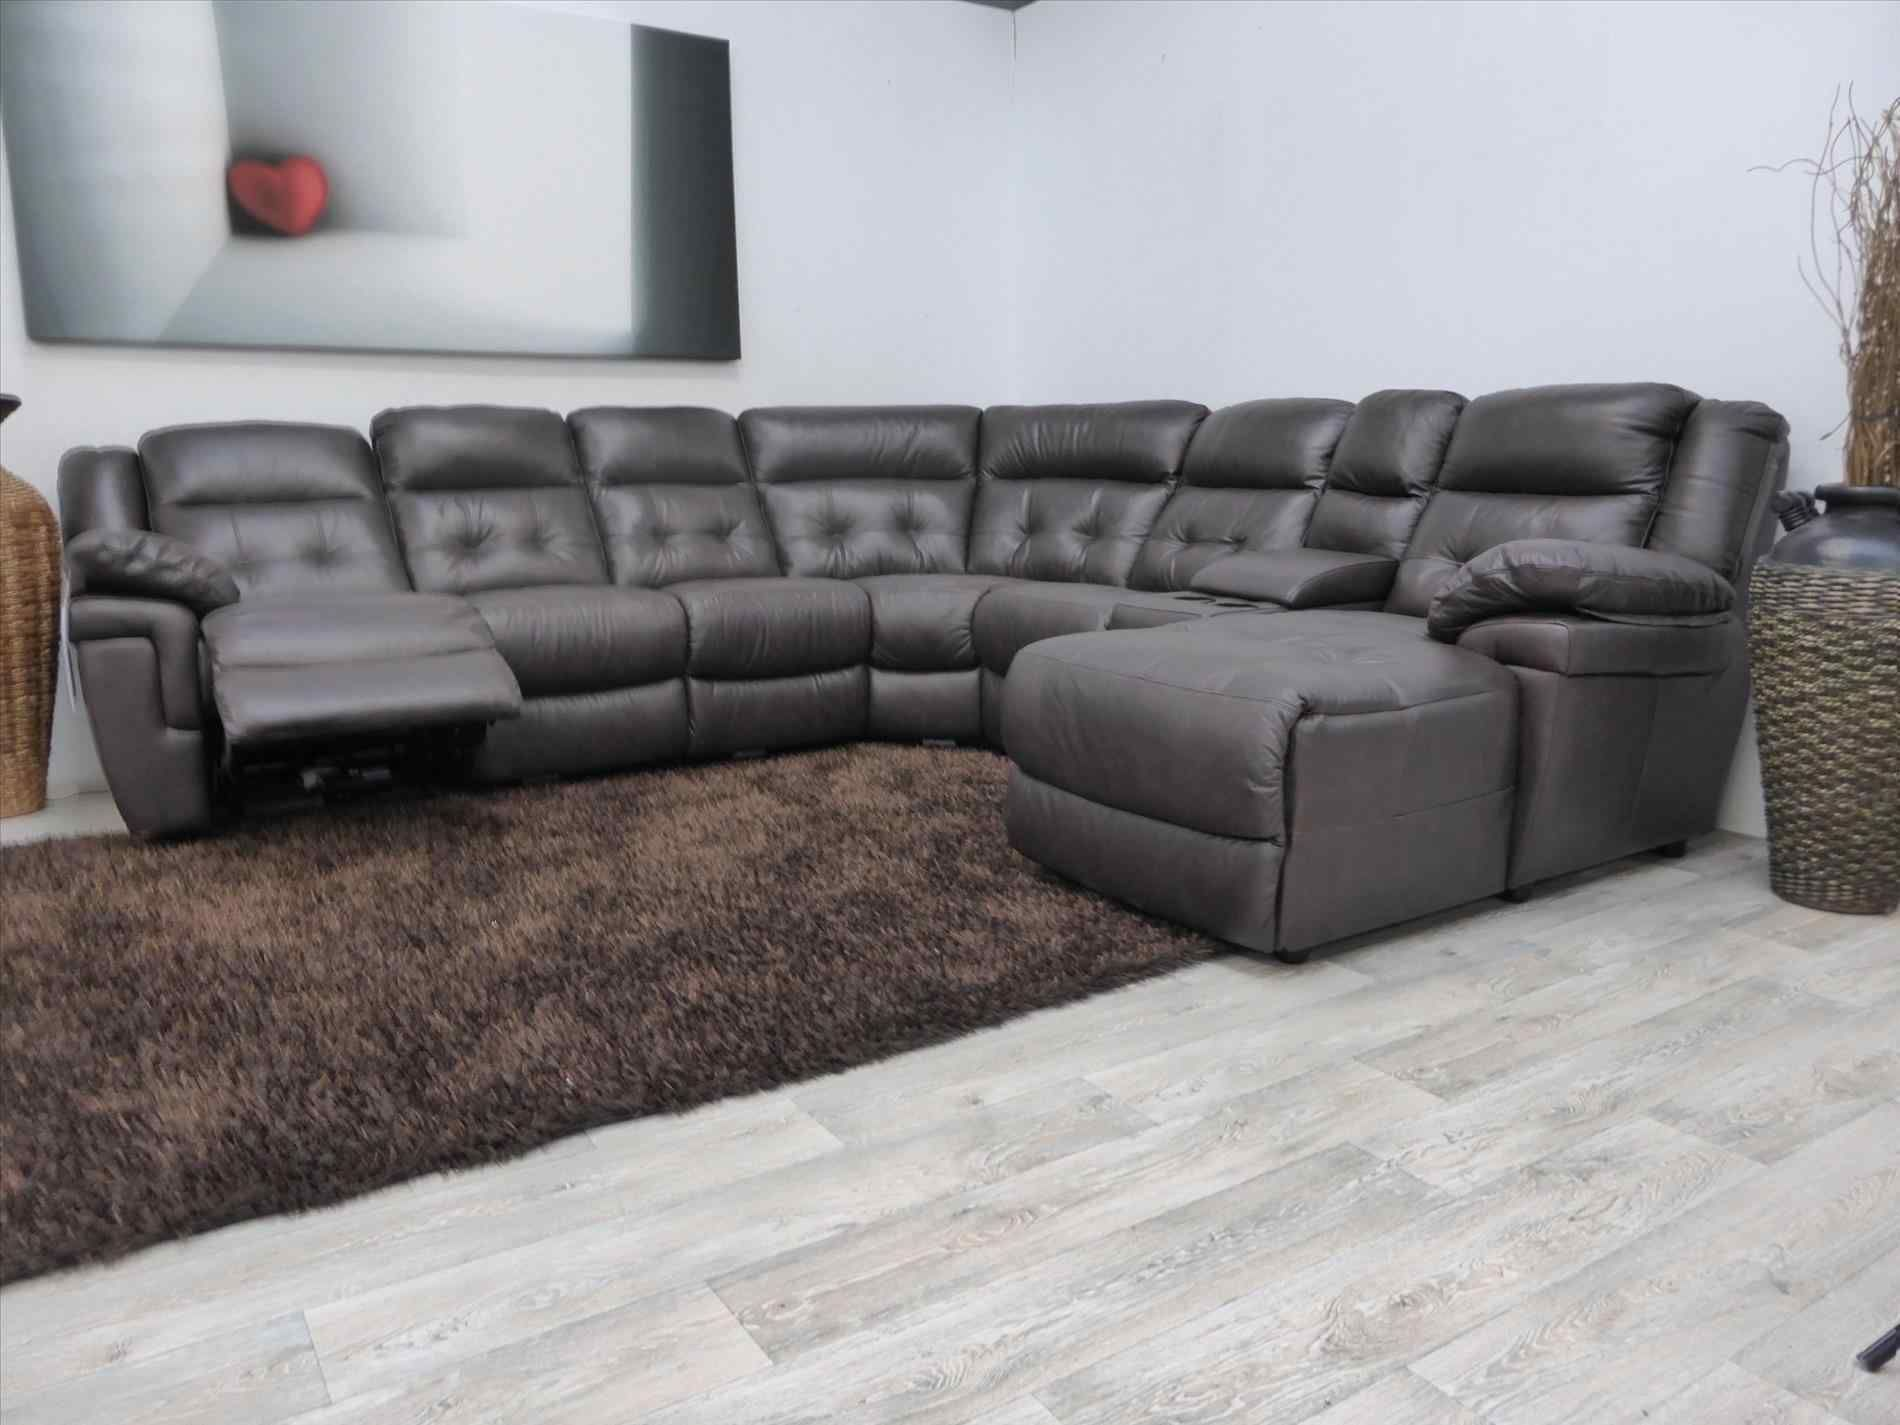 Chair Home Designs S U Sectionals Convenient Mart Sectional Gray Lazy Boy Sofa Sleepers Laz